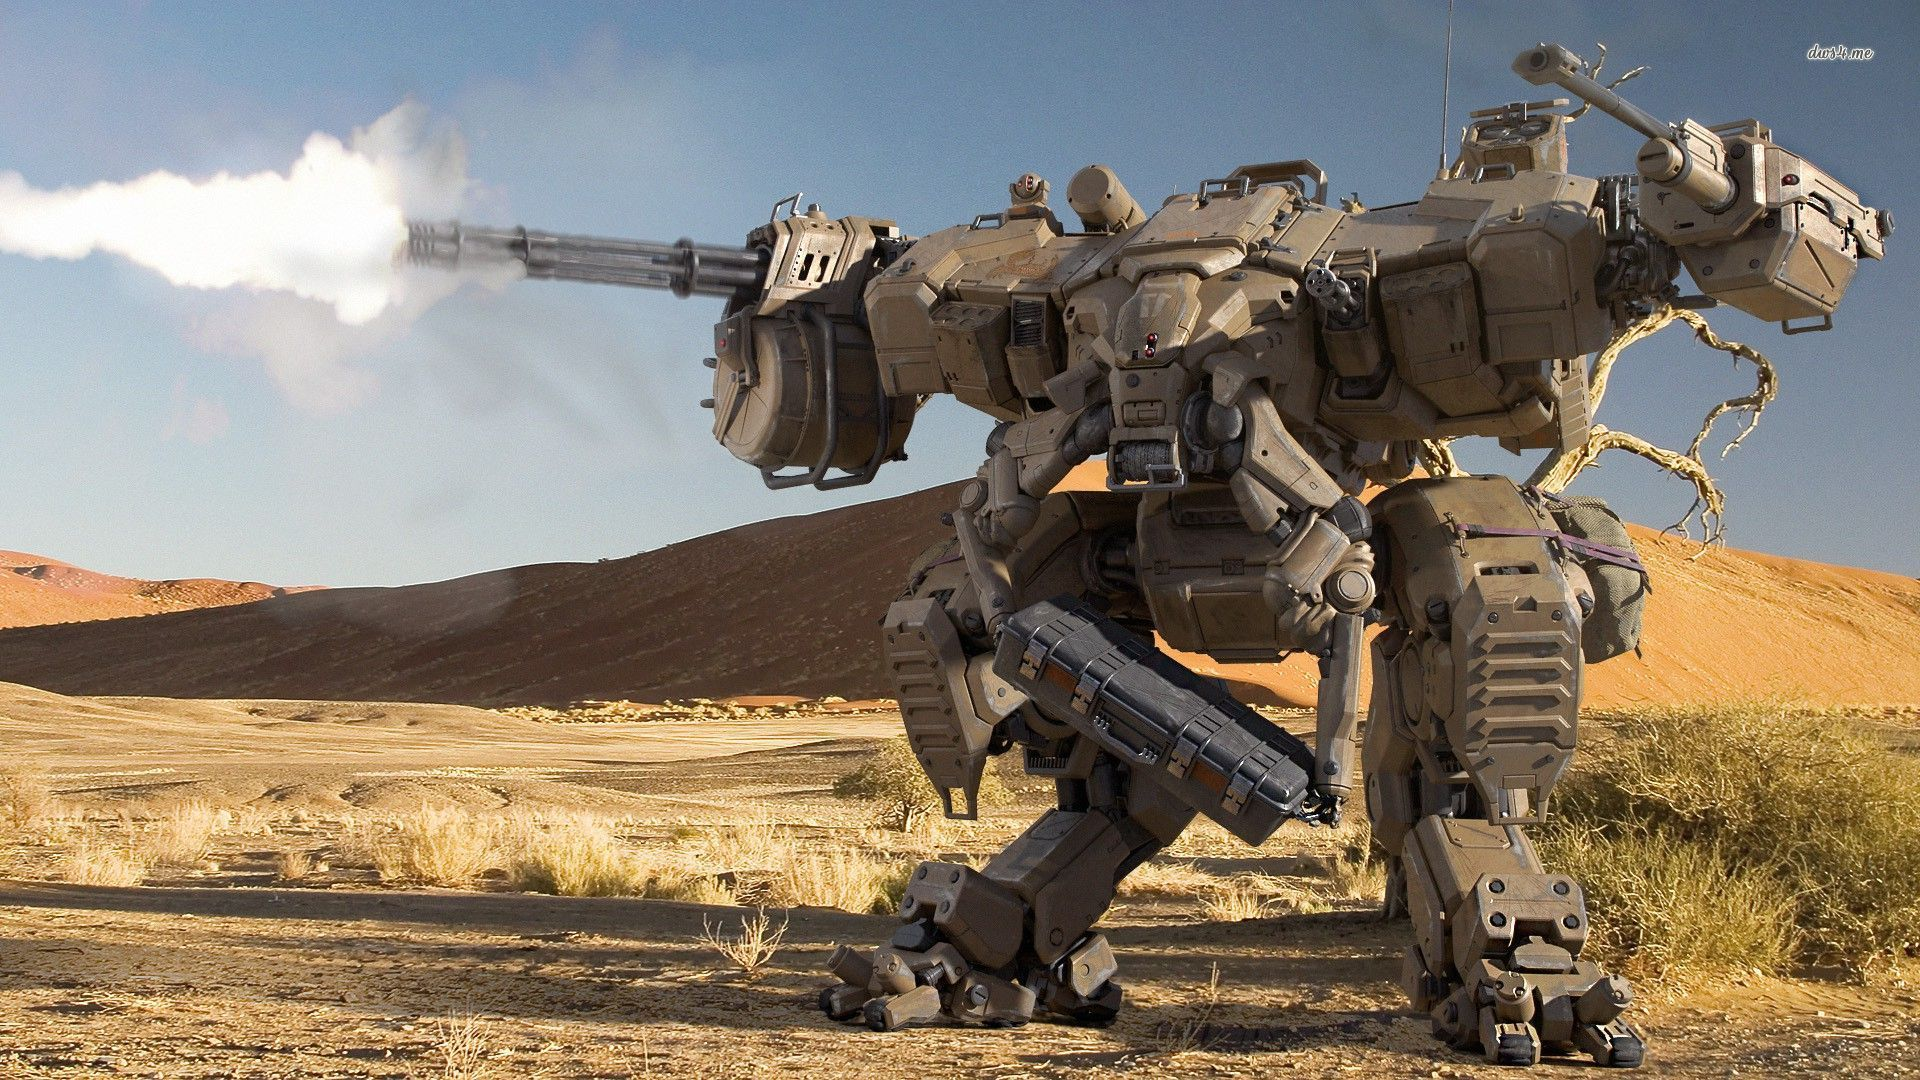 wallpaper 1680x1050 MechWarrior   BattleTech wallpaper 1920x1080 more 1920x1080